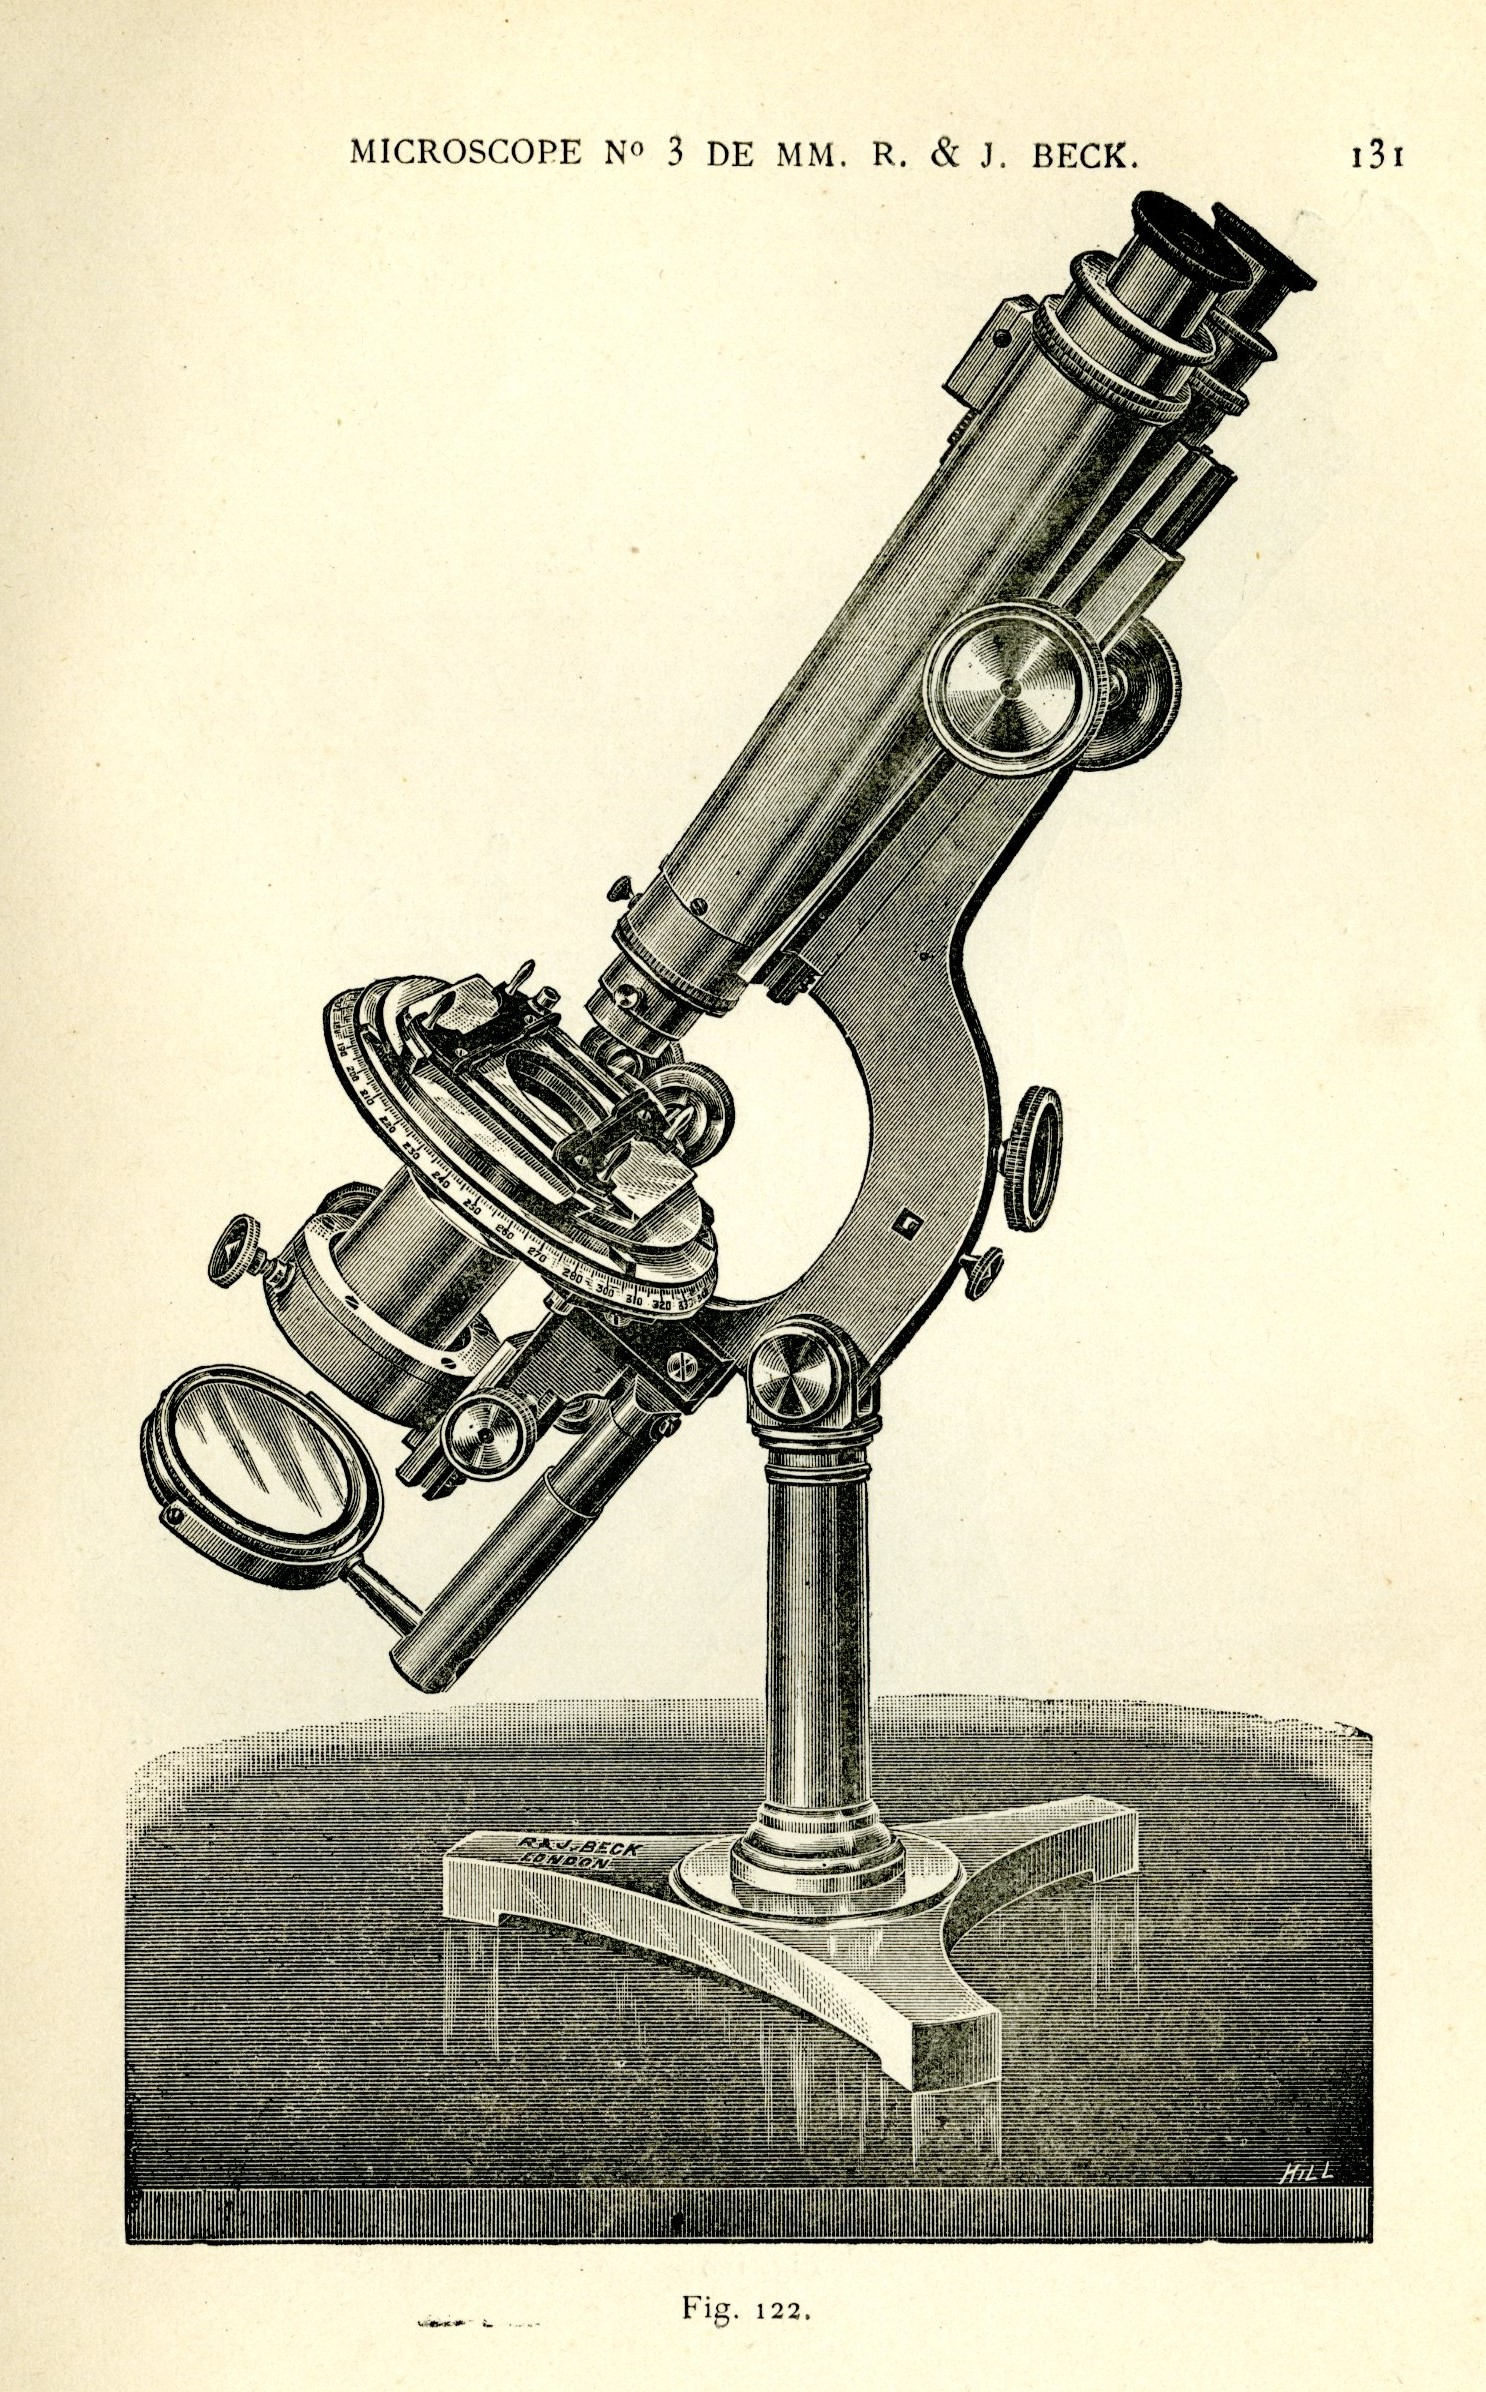 Microscope de Beck